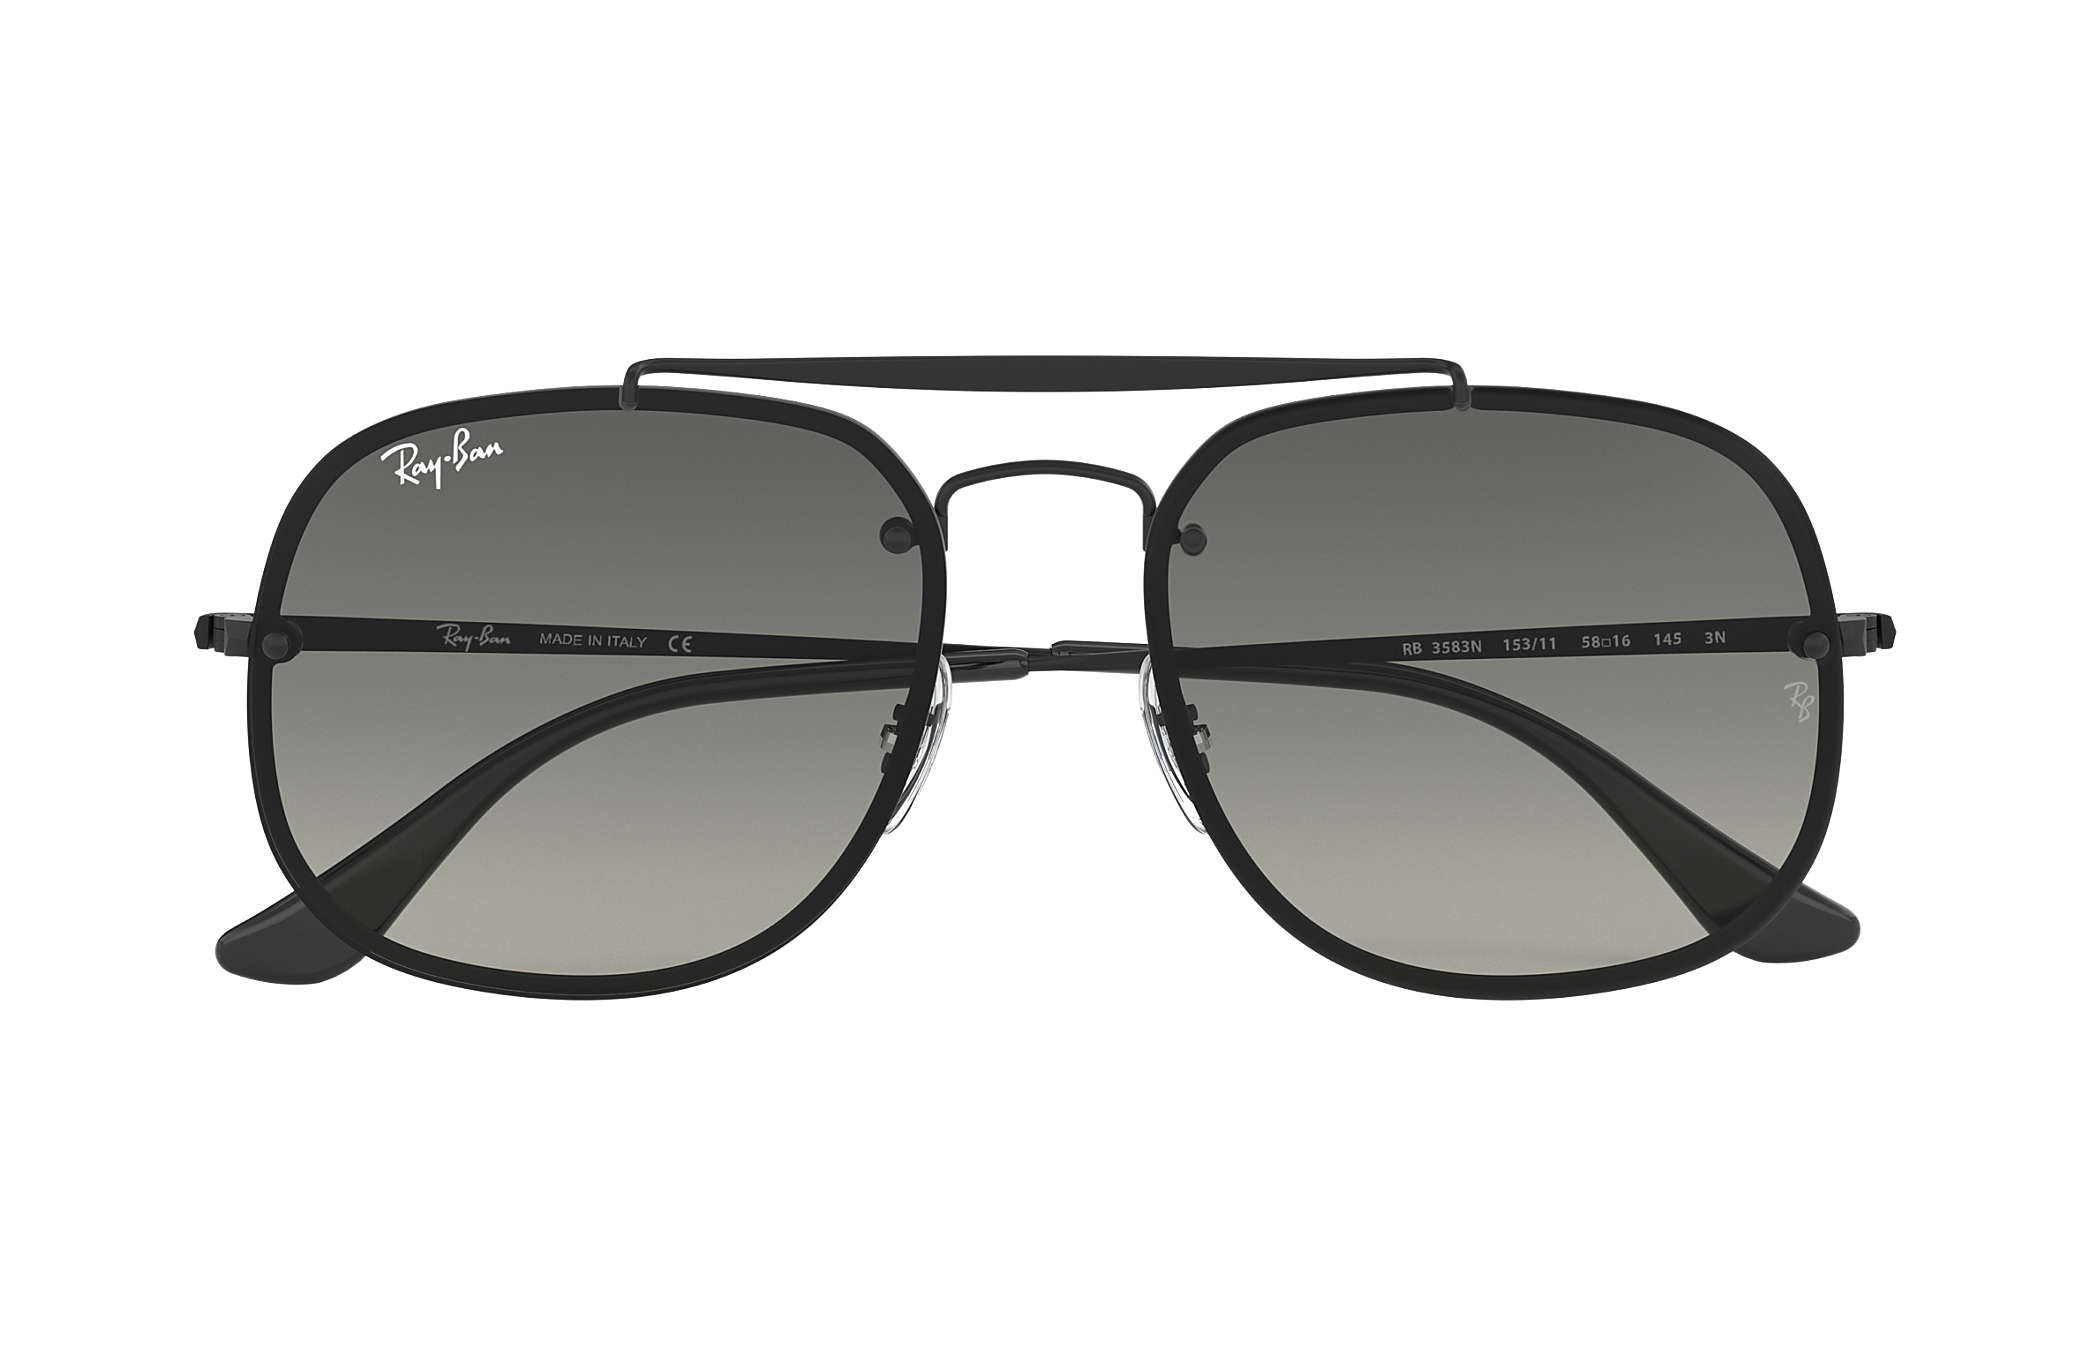 29115378f1f Ray-Ban Blaze General RB3583N Black - Steel - Grey Lenses ...